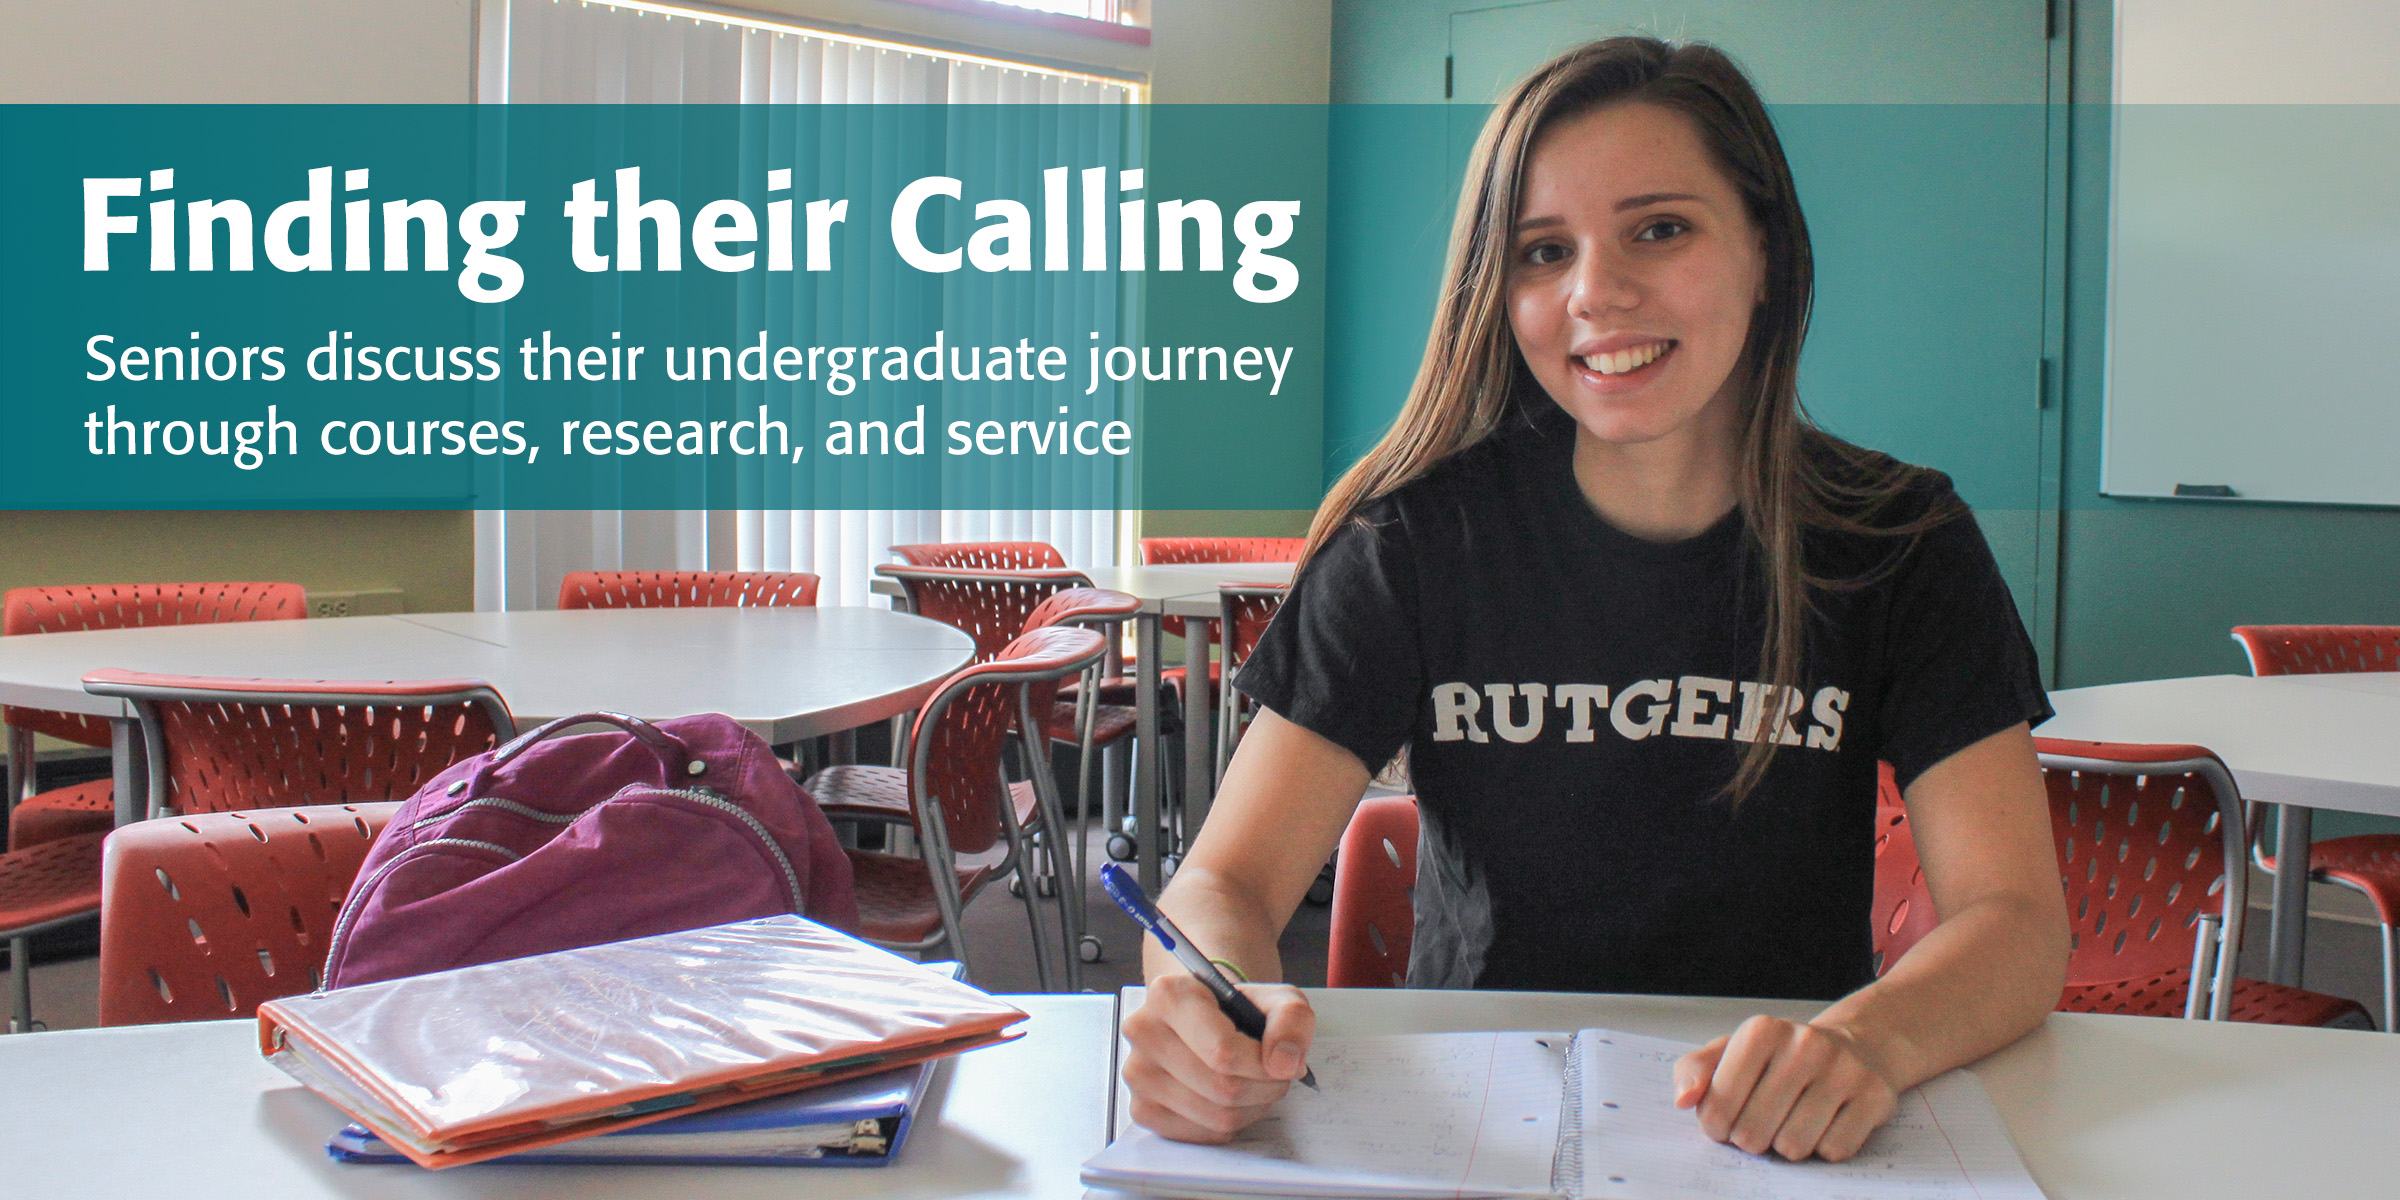 Finding their Calling: Seniors discuss their undergraduate journey through courses, research, and service